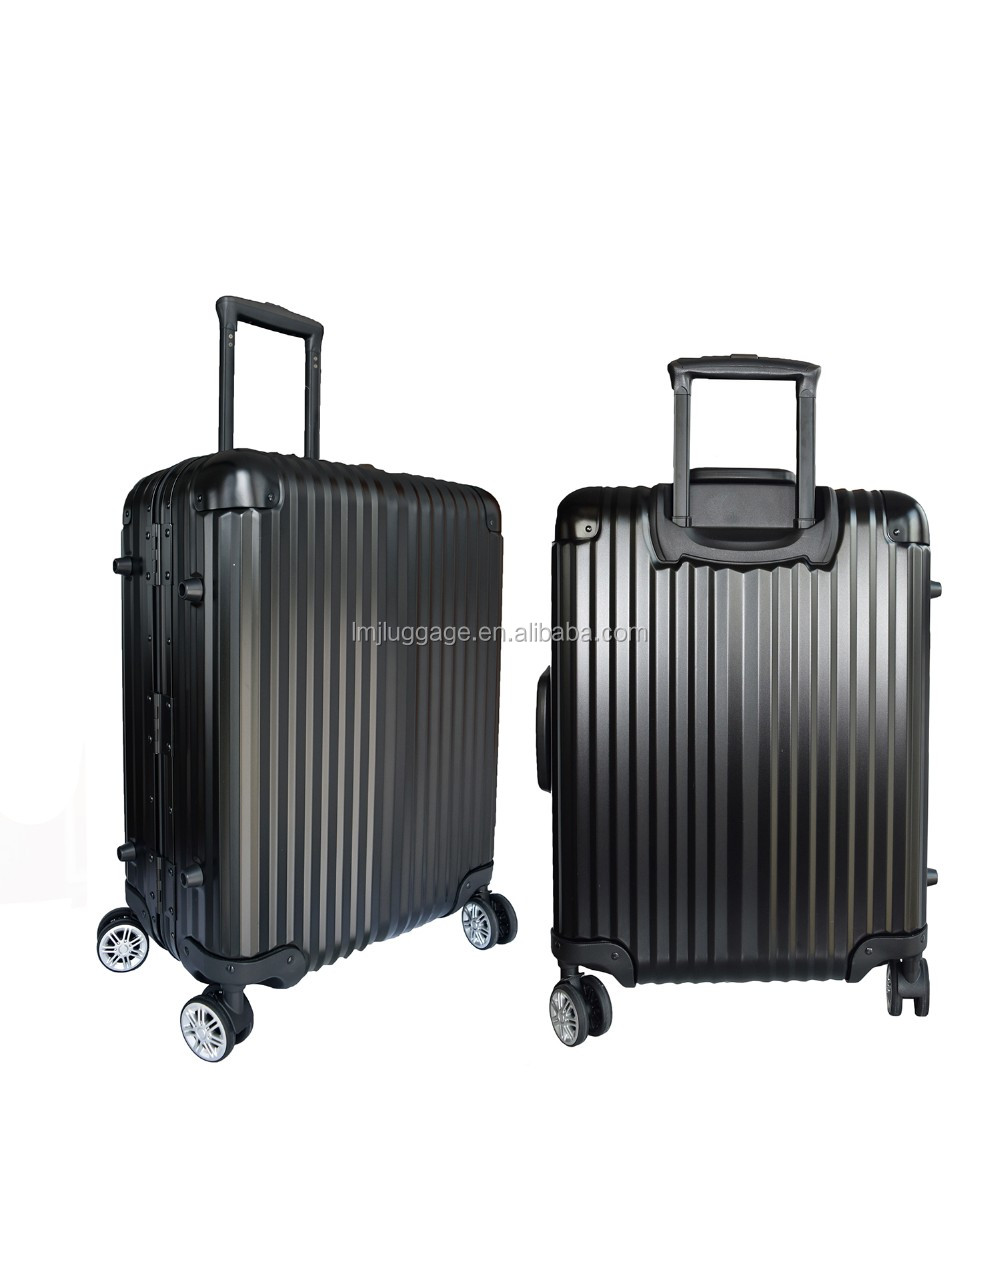 Fashion Pure Color Luggage Suitcase Custom Luggage Suitcase Trunk Case, Aluminum Alloy Suitcase